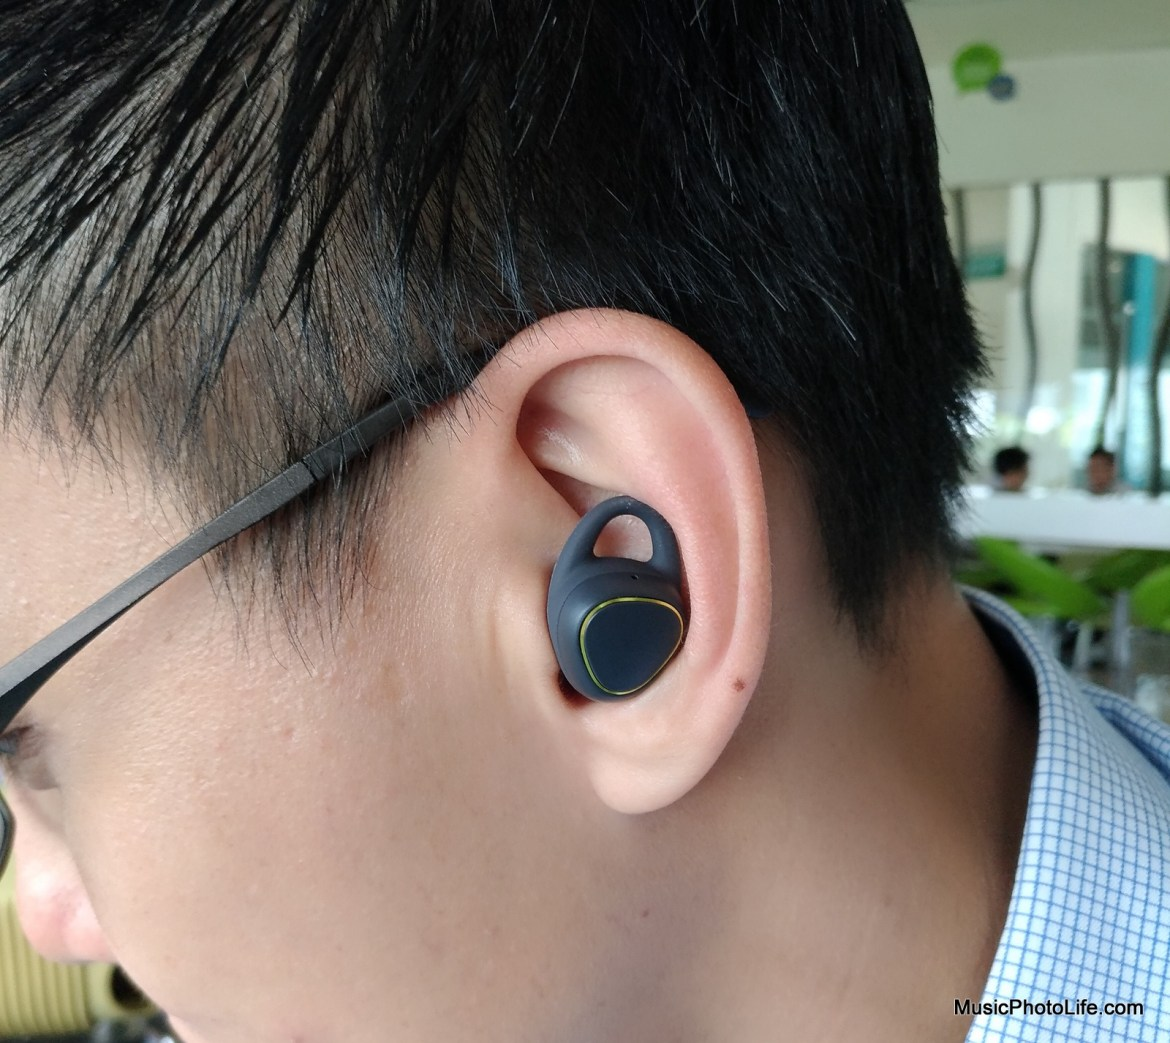 Samsung Gear IconX on ear